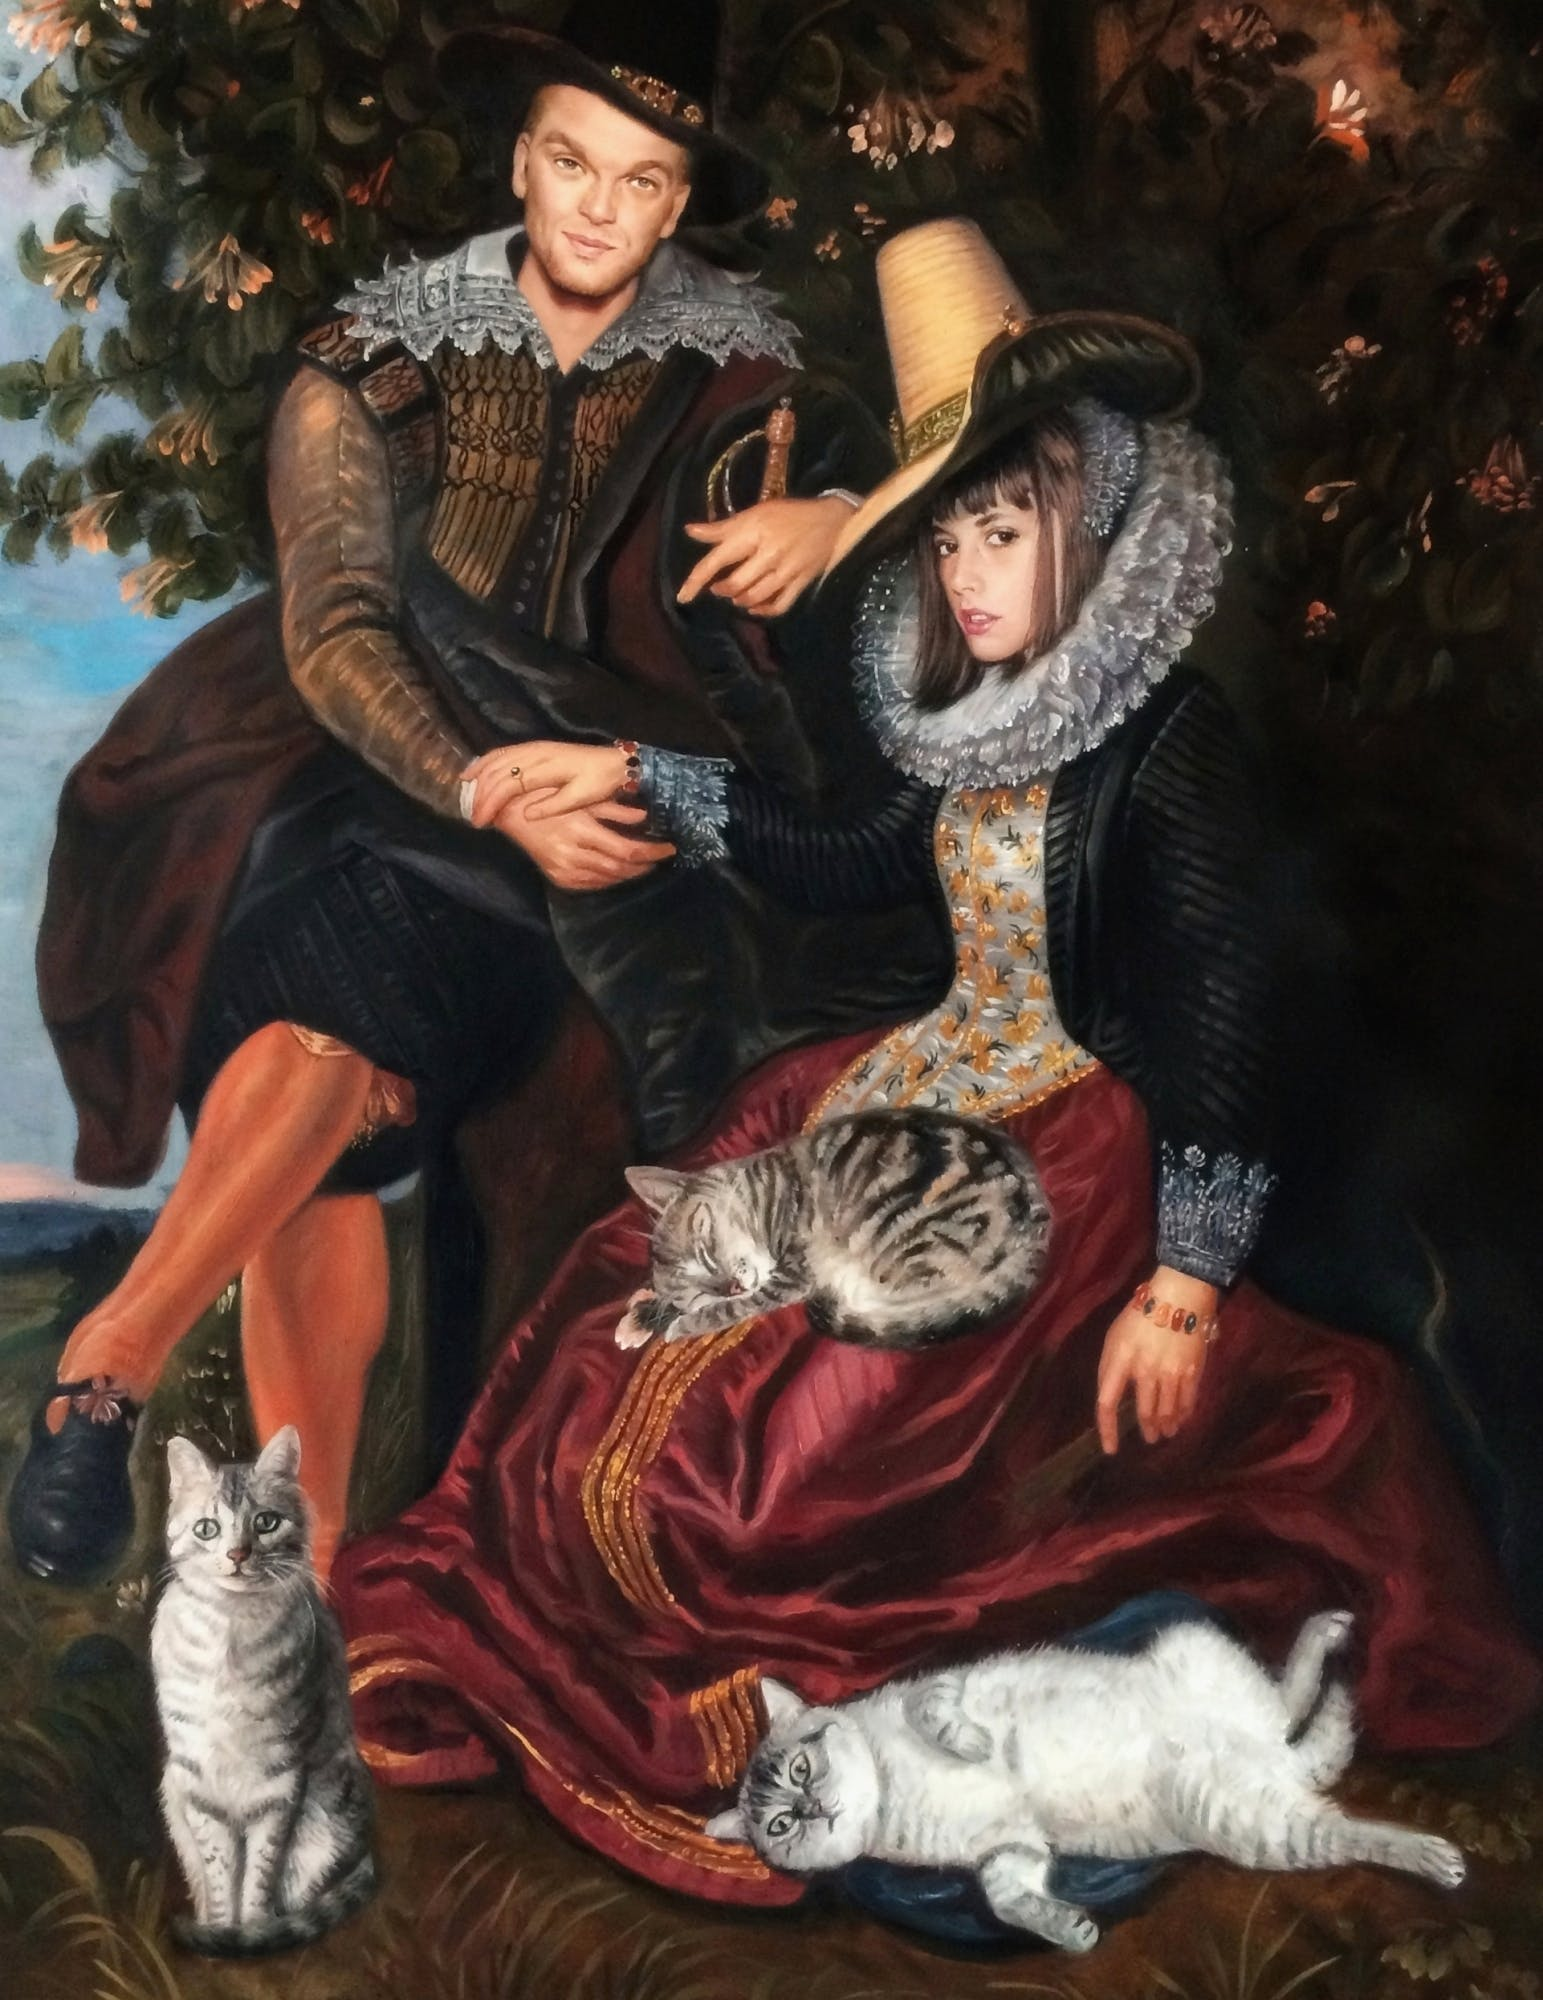 Renaissance painting of a man and woman posin with their 3 cats